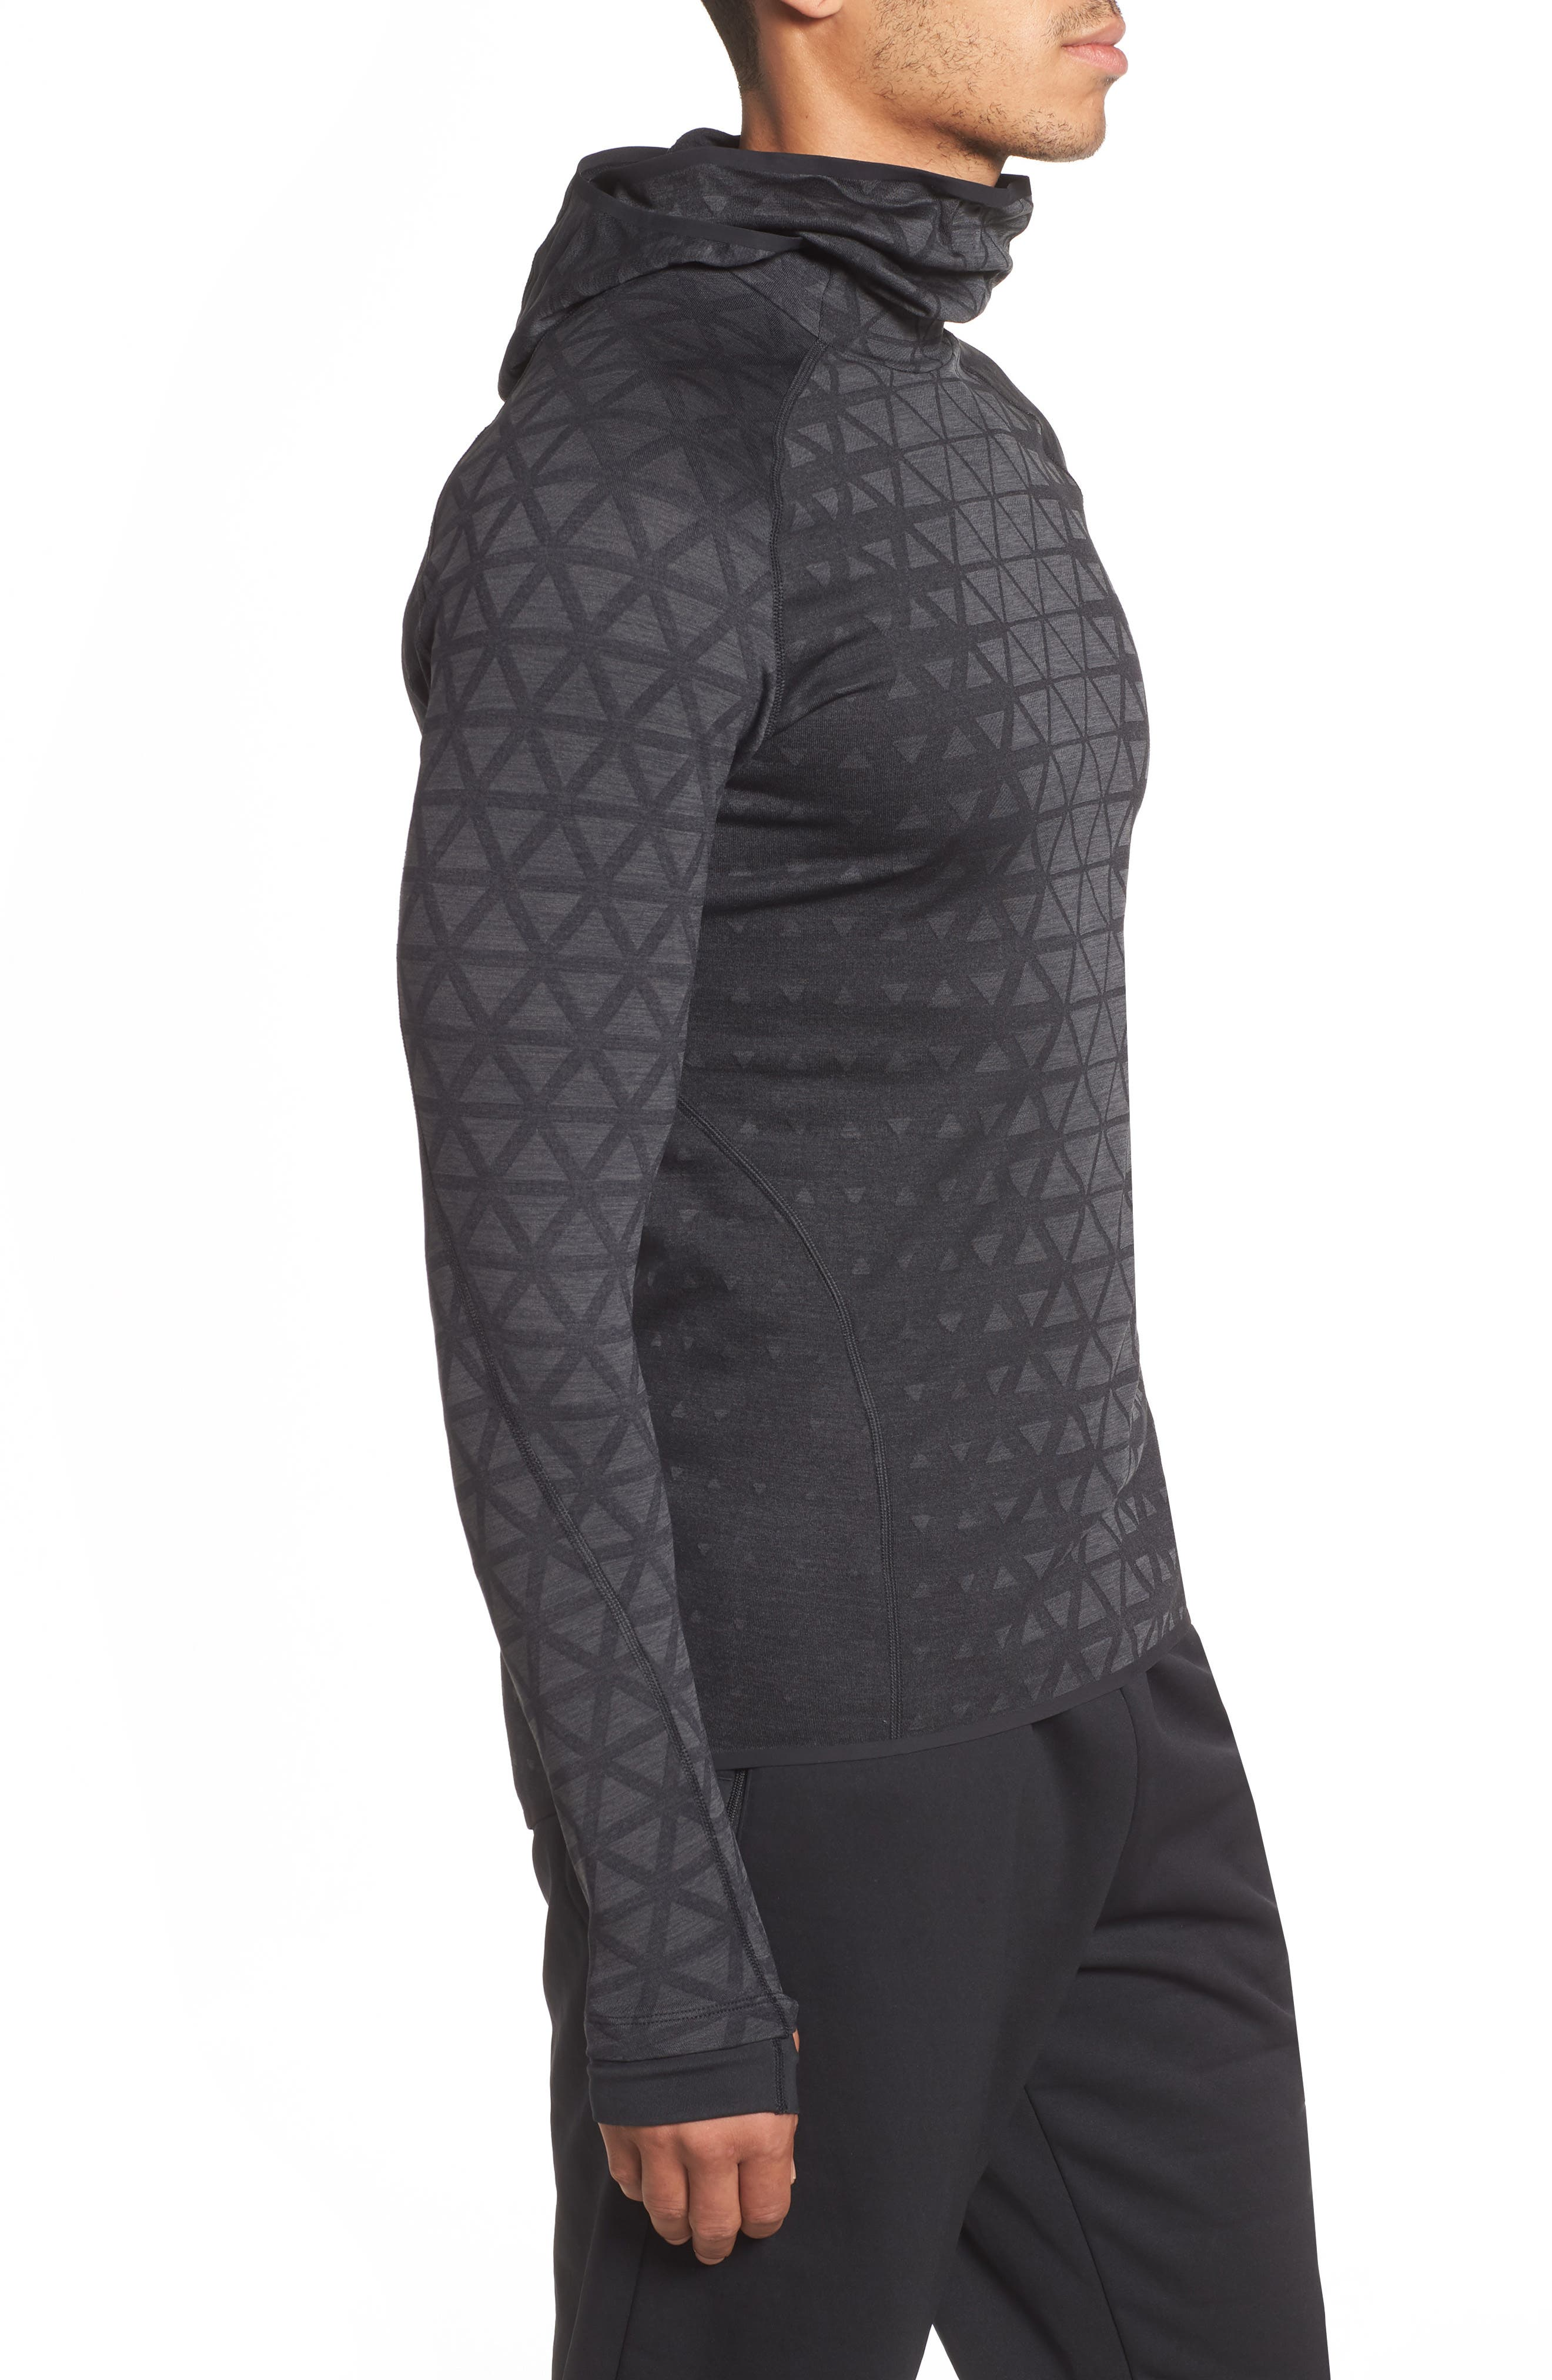 Therma Sphere Hooded Training Top,                             Alternate thumbnail 3, color,                             BLACK/ ANTHRACITE/ ANTHRACITE